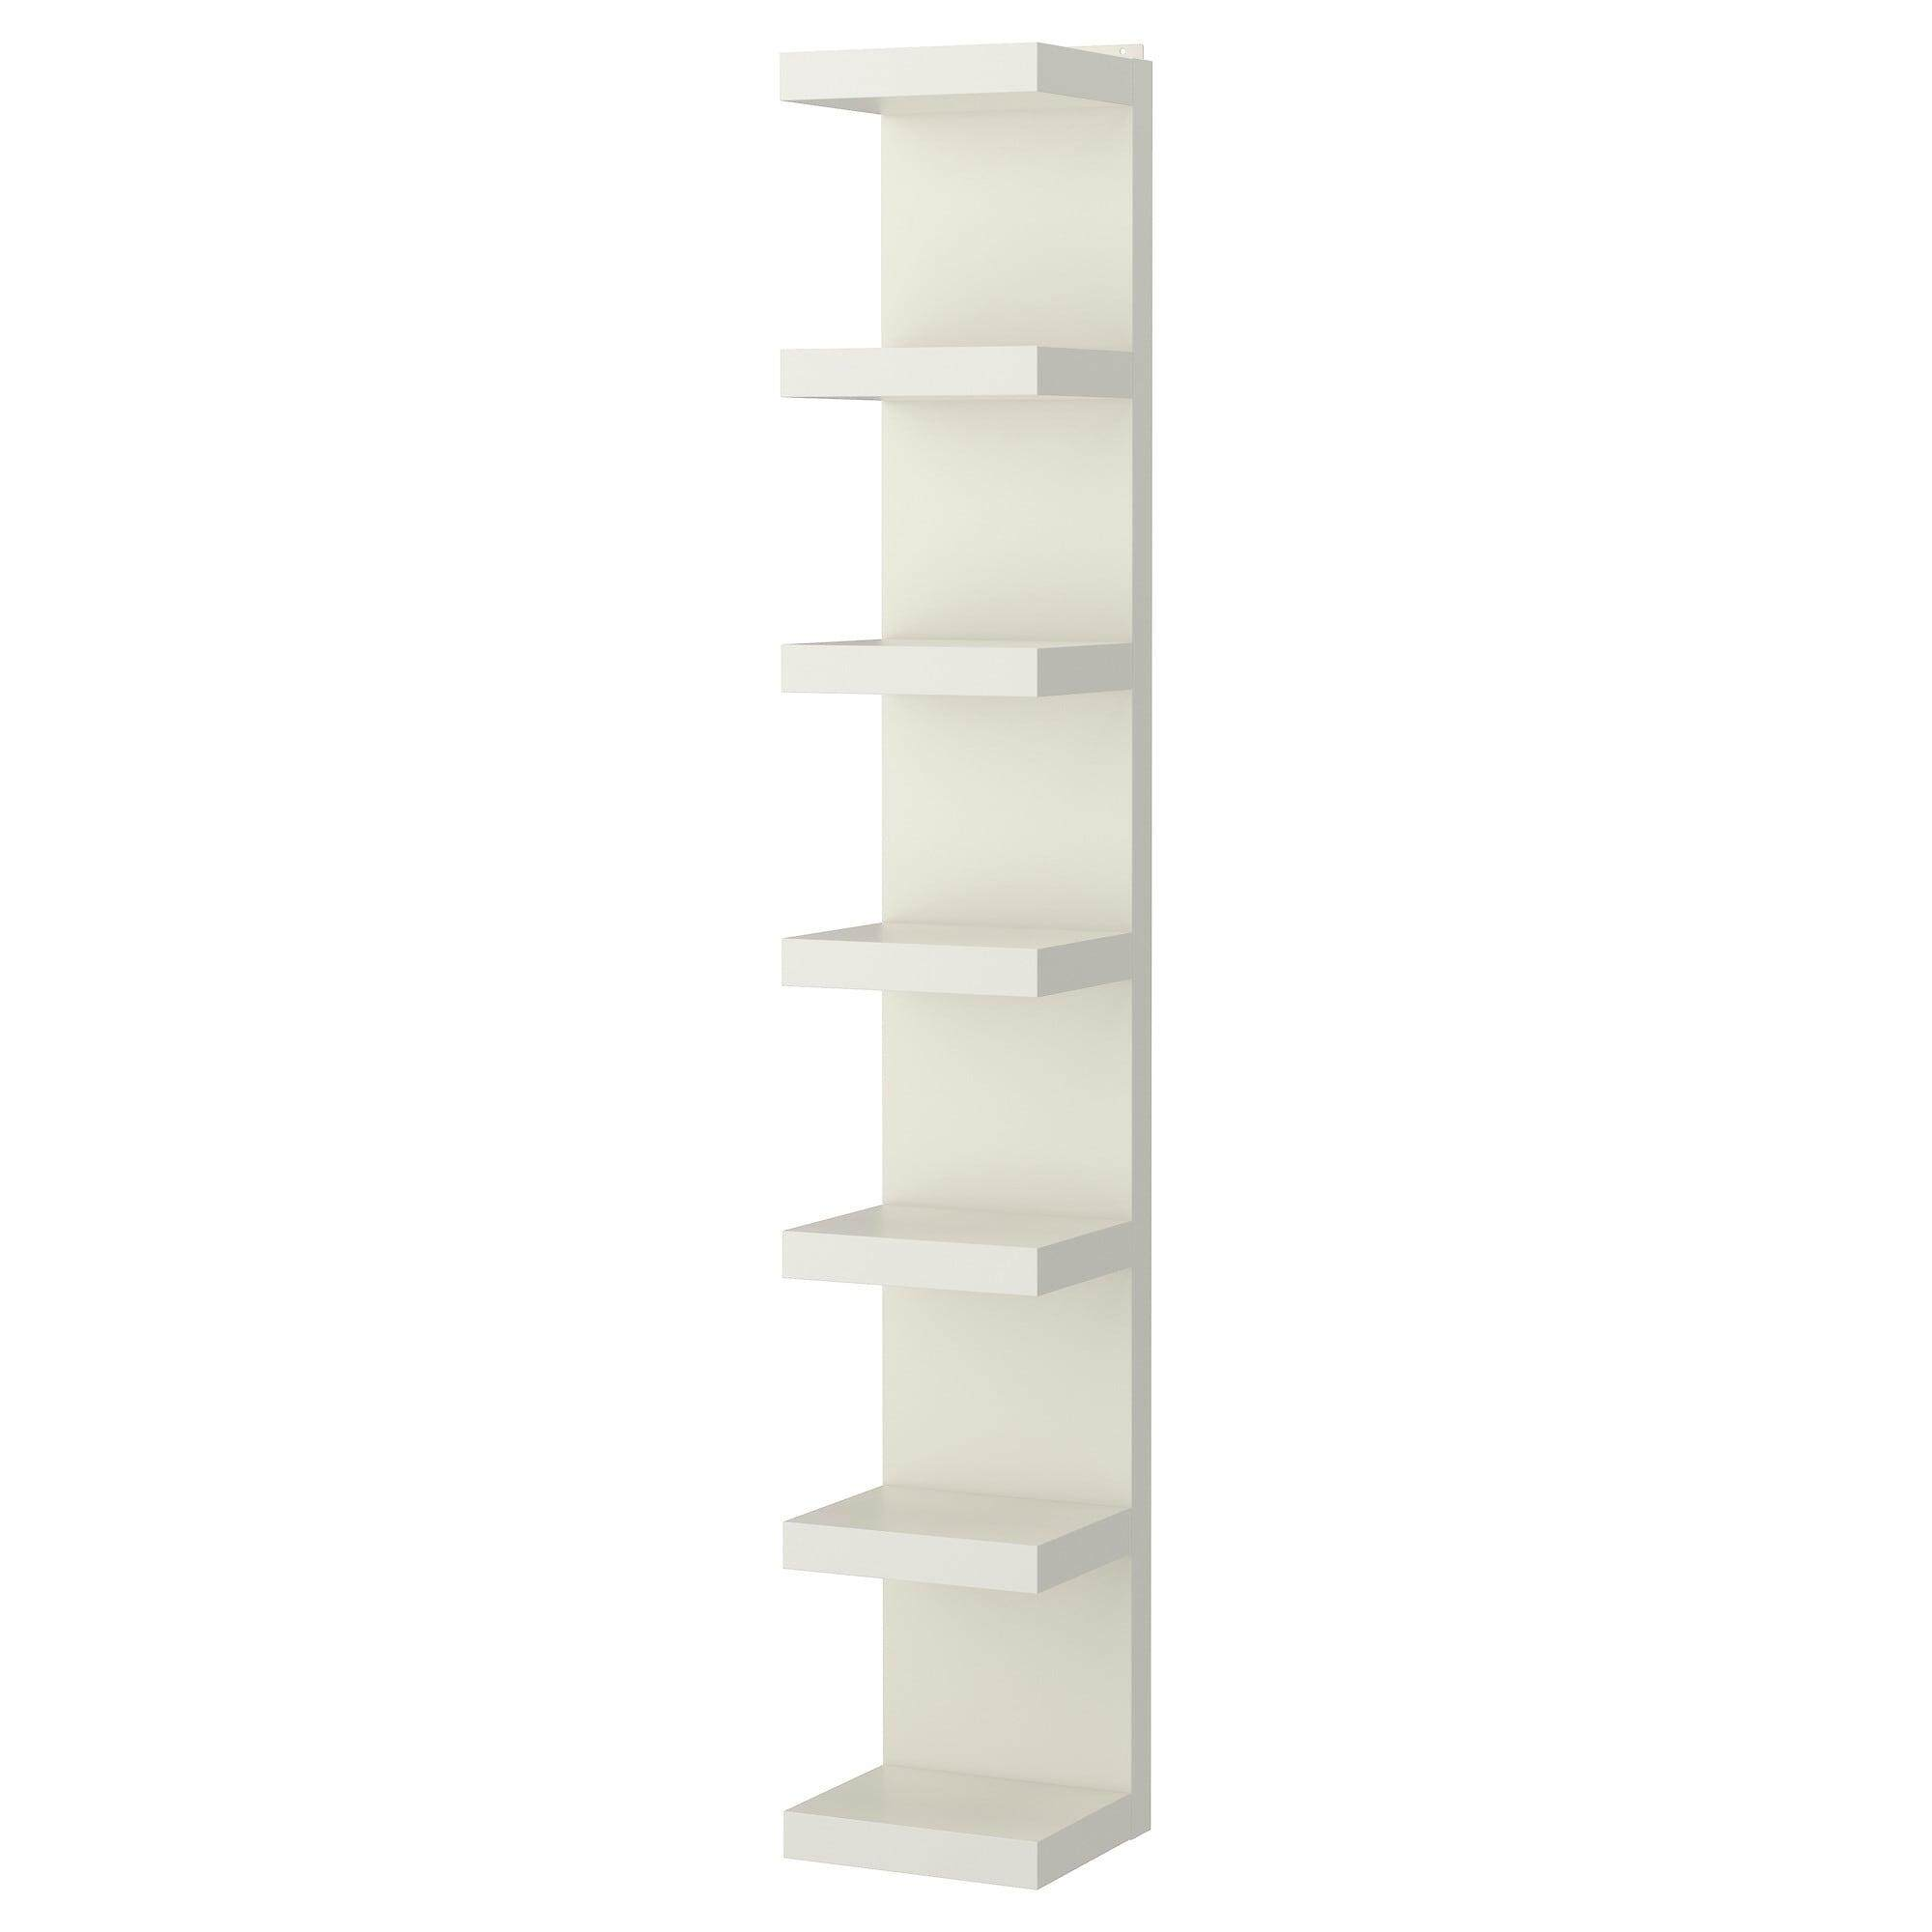 Lack Wall Shelf Unit White 30x190 Cm By Eightynine.